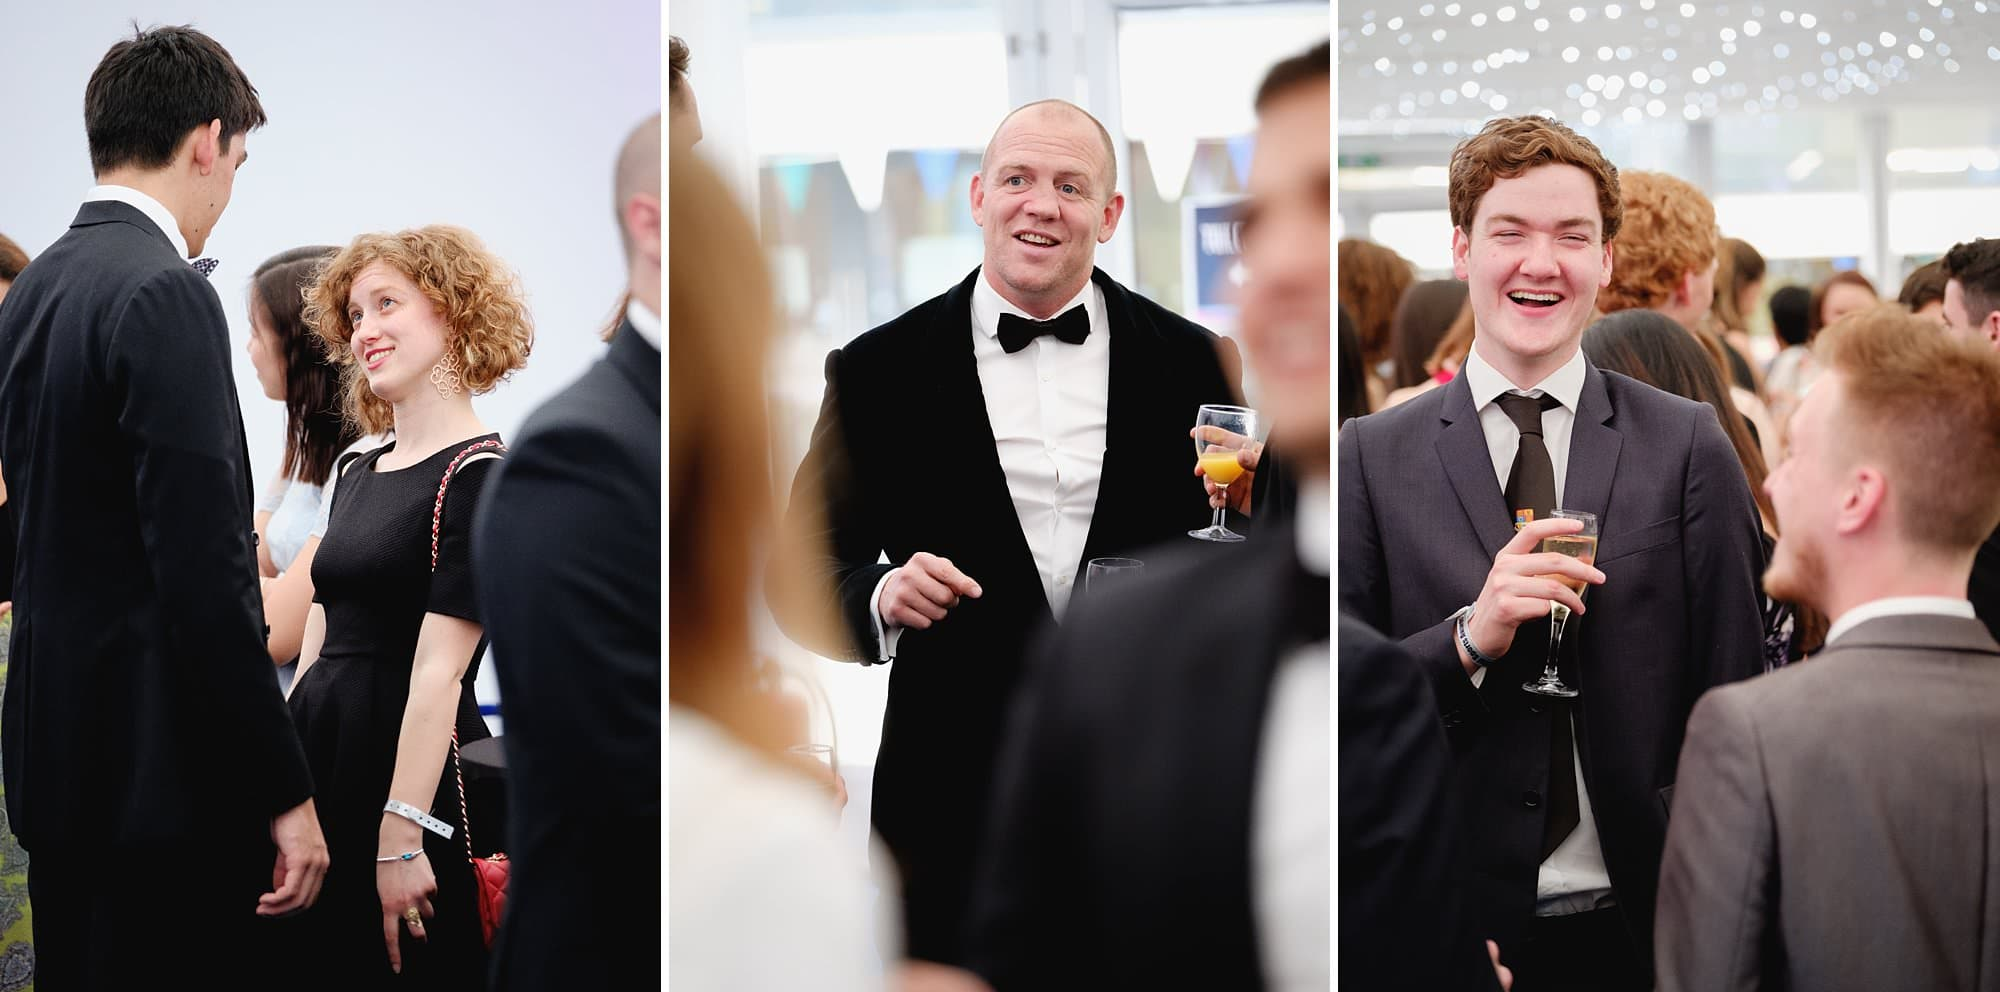 event photographer london icl 2017 007 - Corporate: Imperial Sports Awards